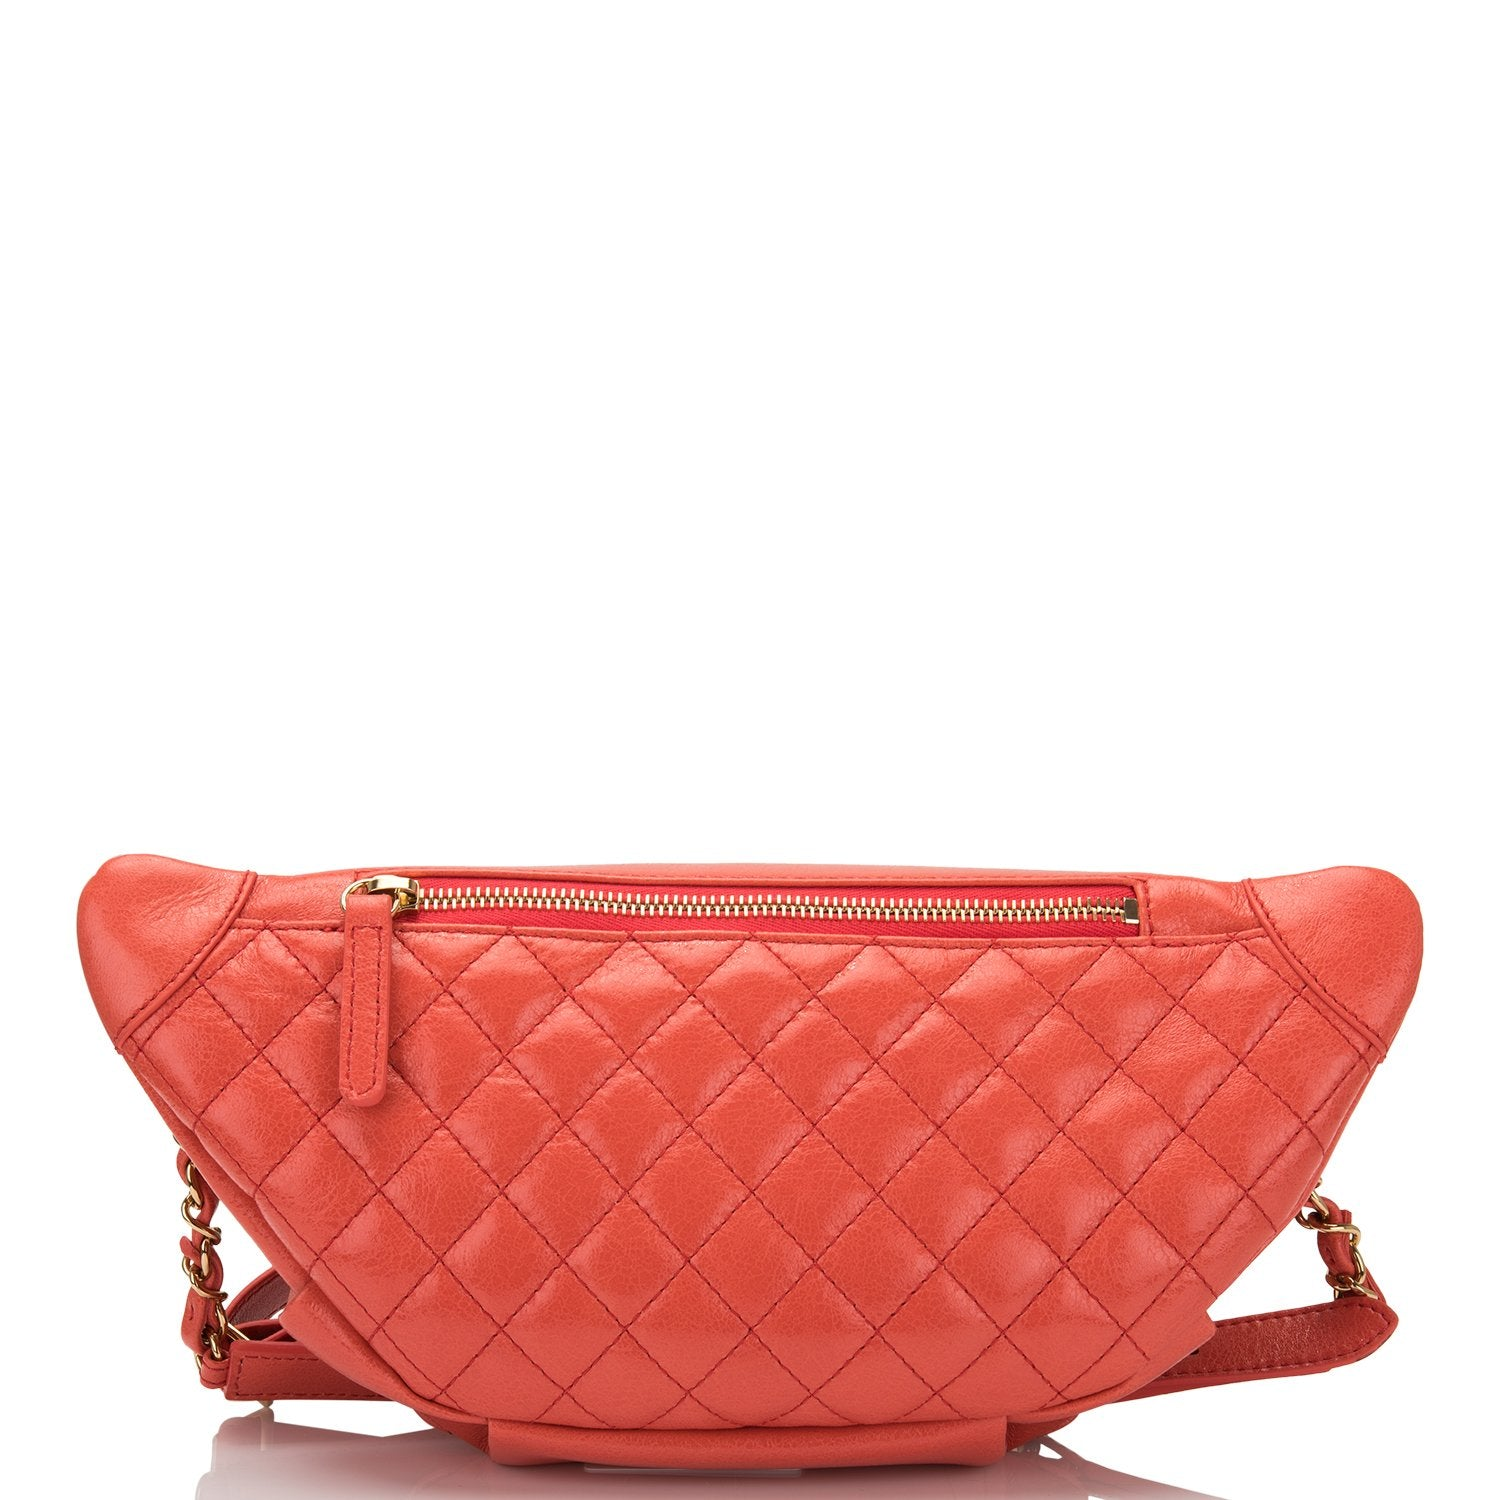 Chanel Coral Pink Lambskin Double Purpose Fanny Pack and Shoulder Bag